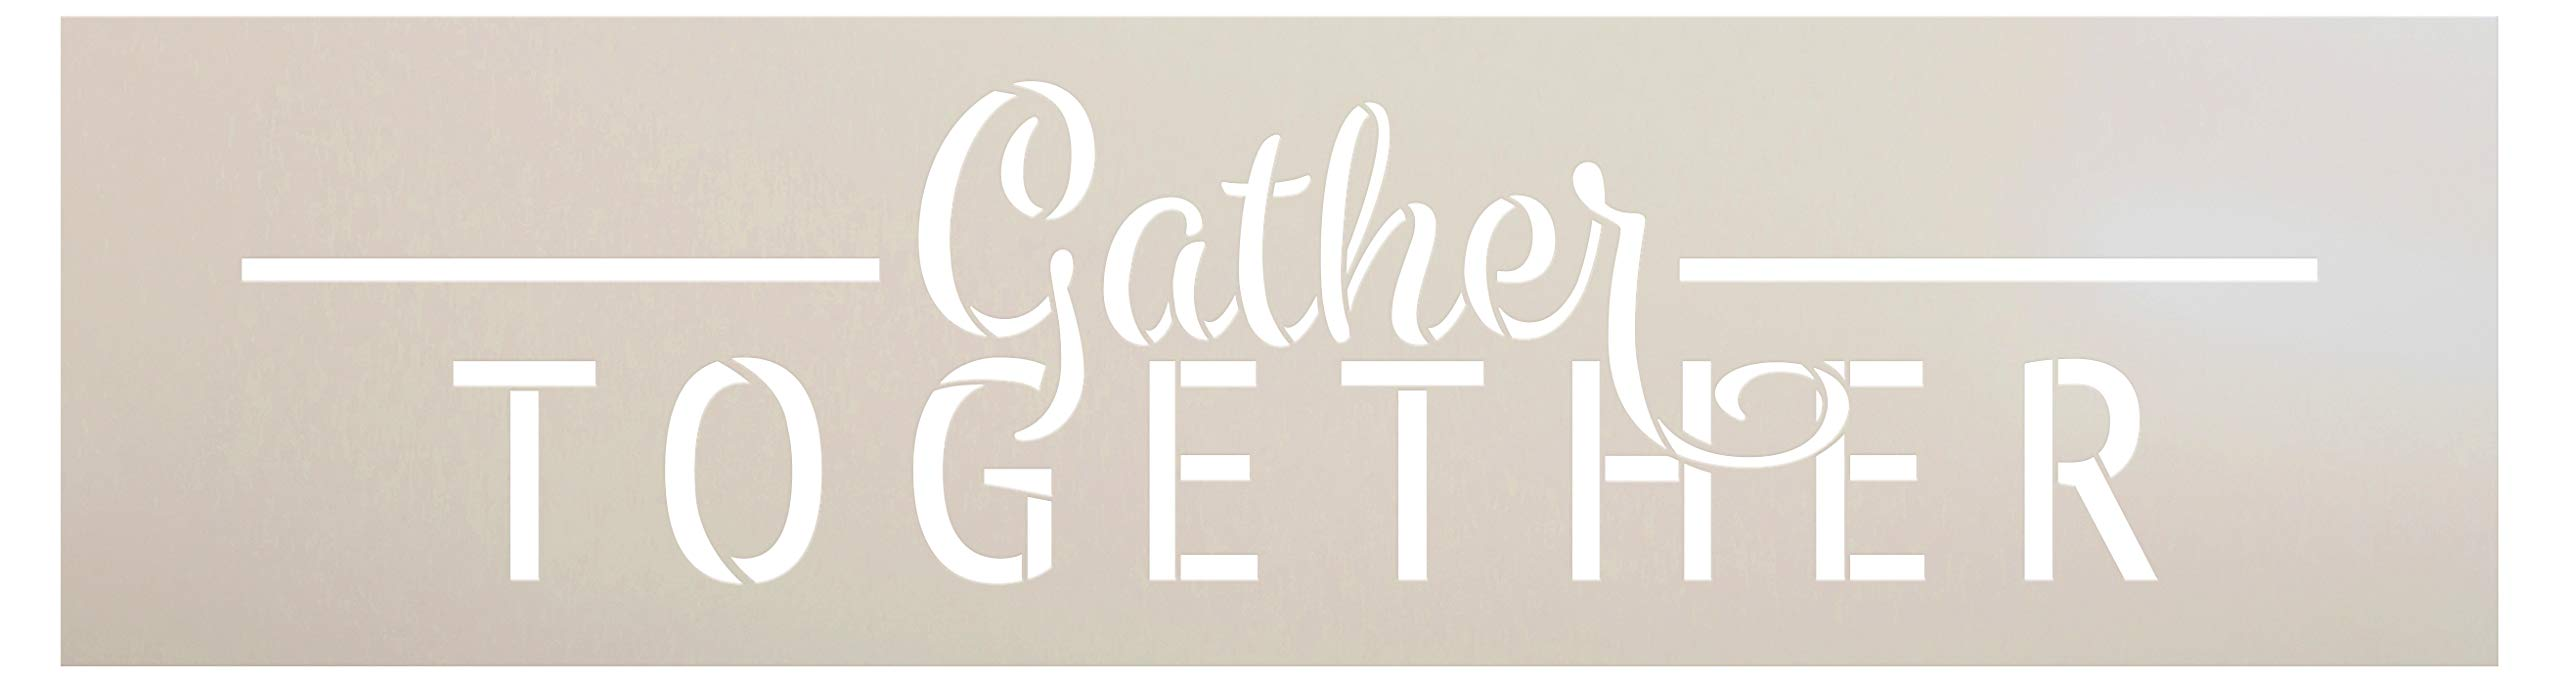 Gather Together Fall Stencil by StudioR12   Wood Signs   Word Art Reusable   Family Dining Room   Painting Chalk Mixed Media Multi-Media   Use for Journaling, DIY Home - Choose (30'' x 8'')